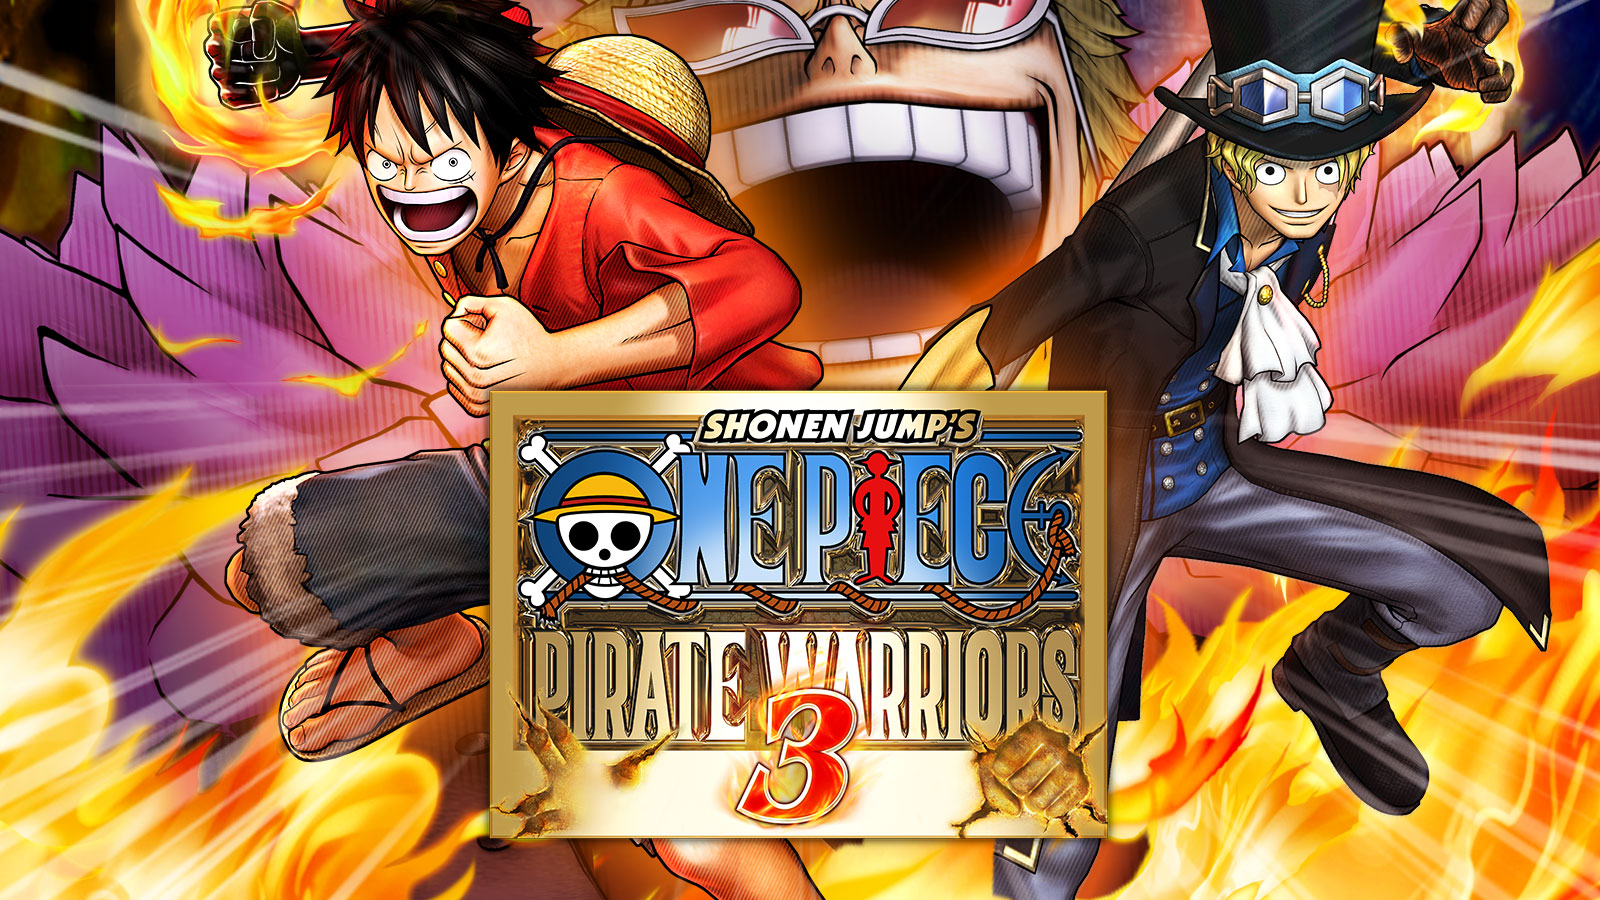 (Review) One Piece: Pirate Warriors 3 (Vita)